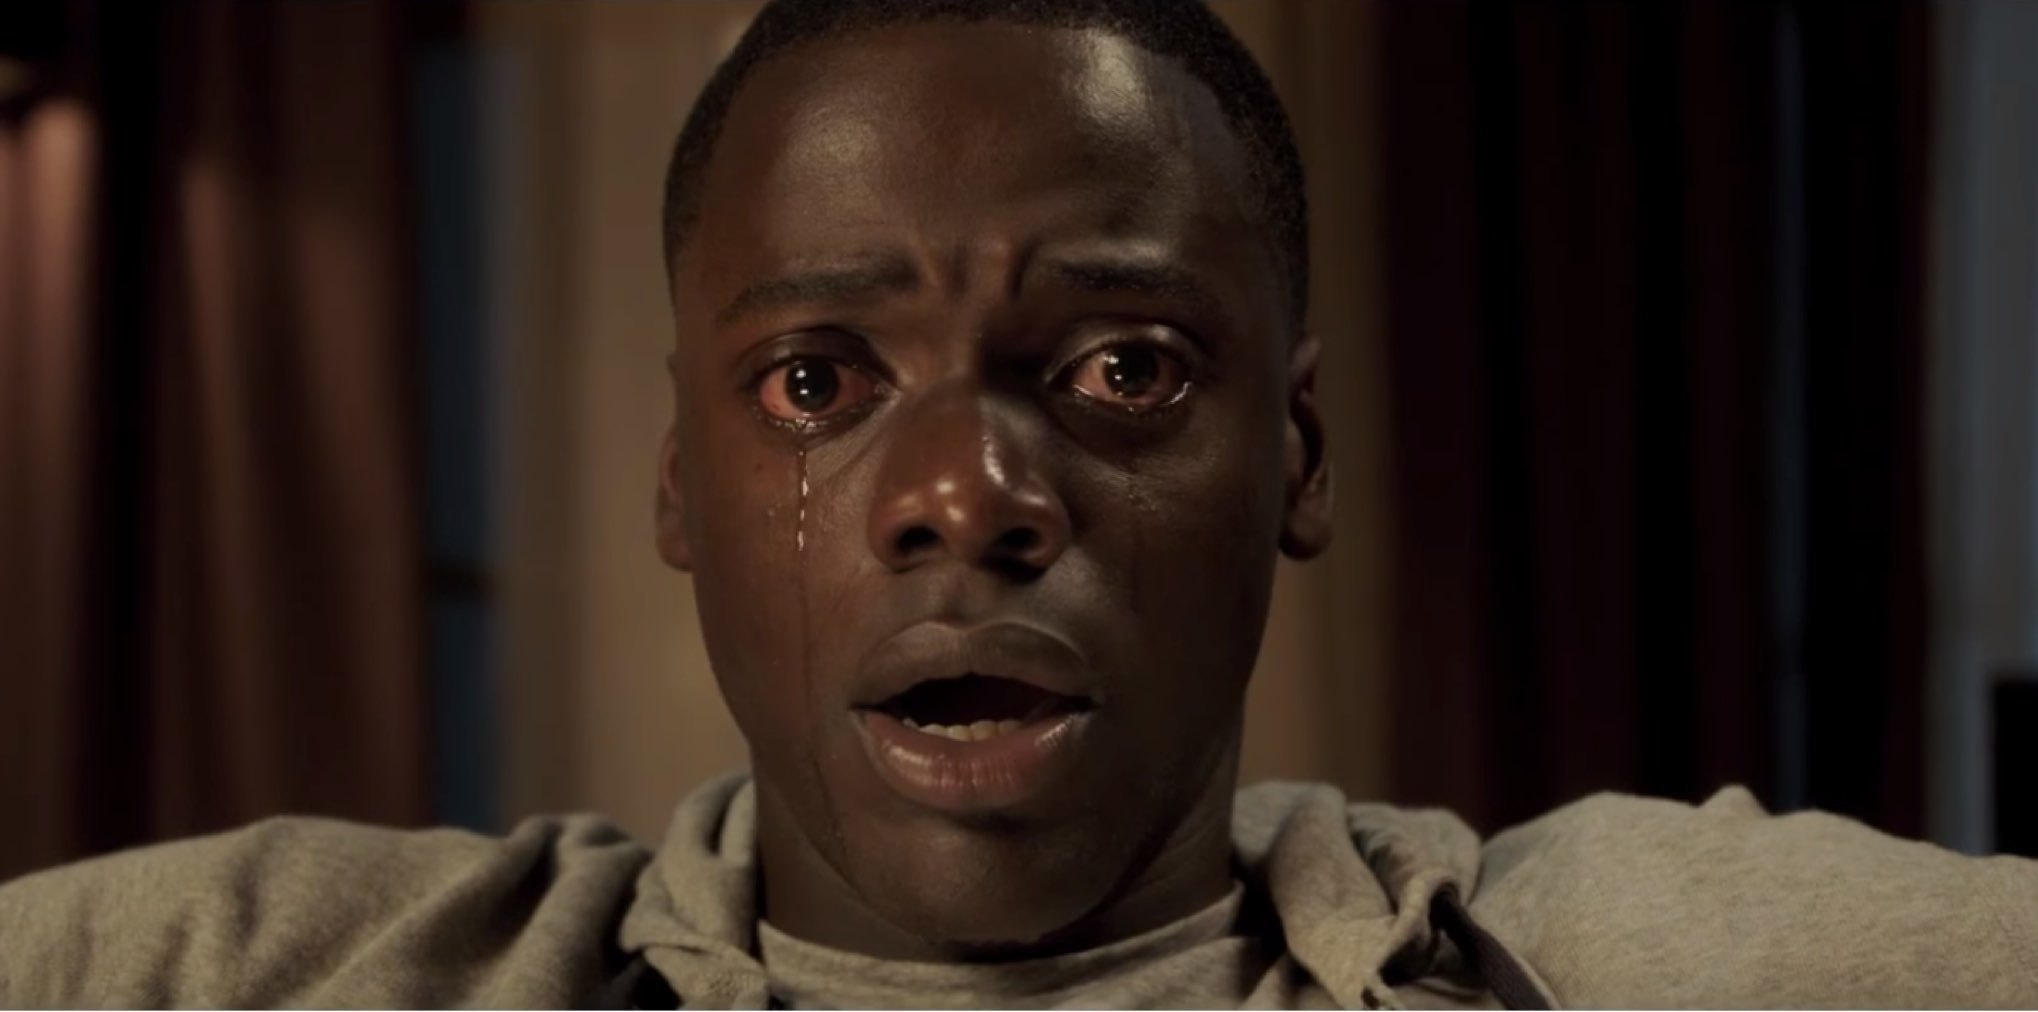 Get Out Movie Review: Andre's Perspective